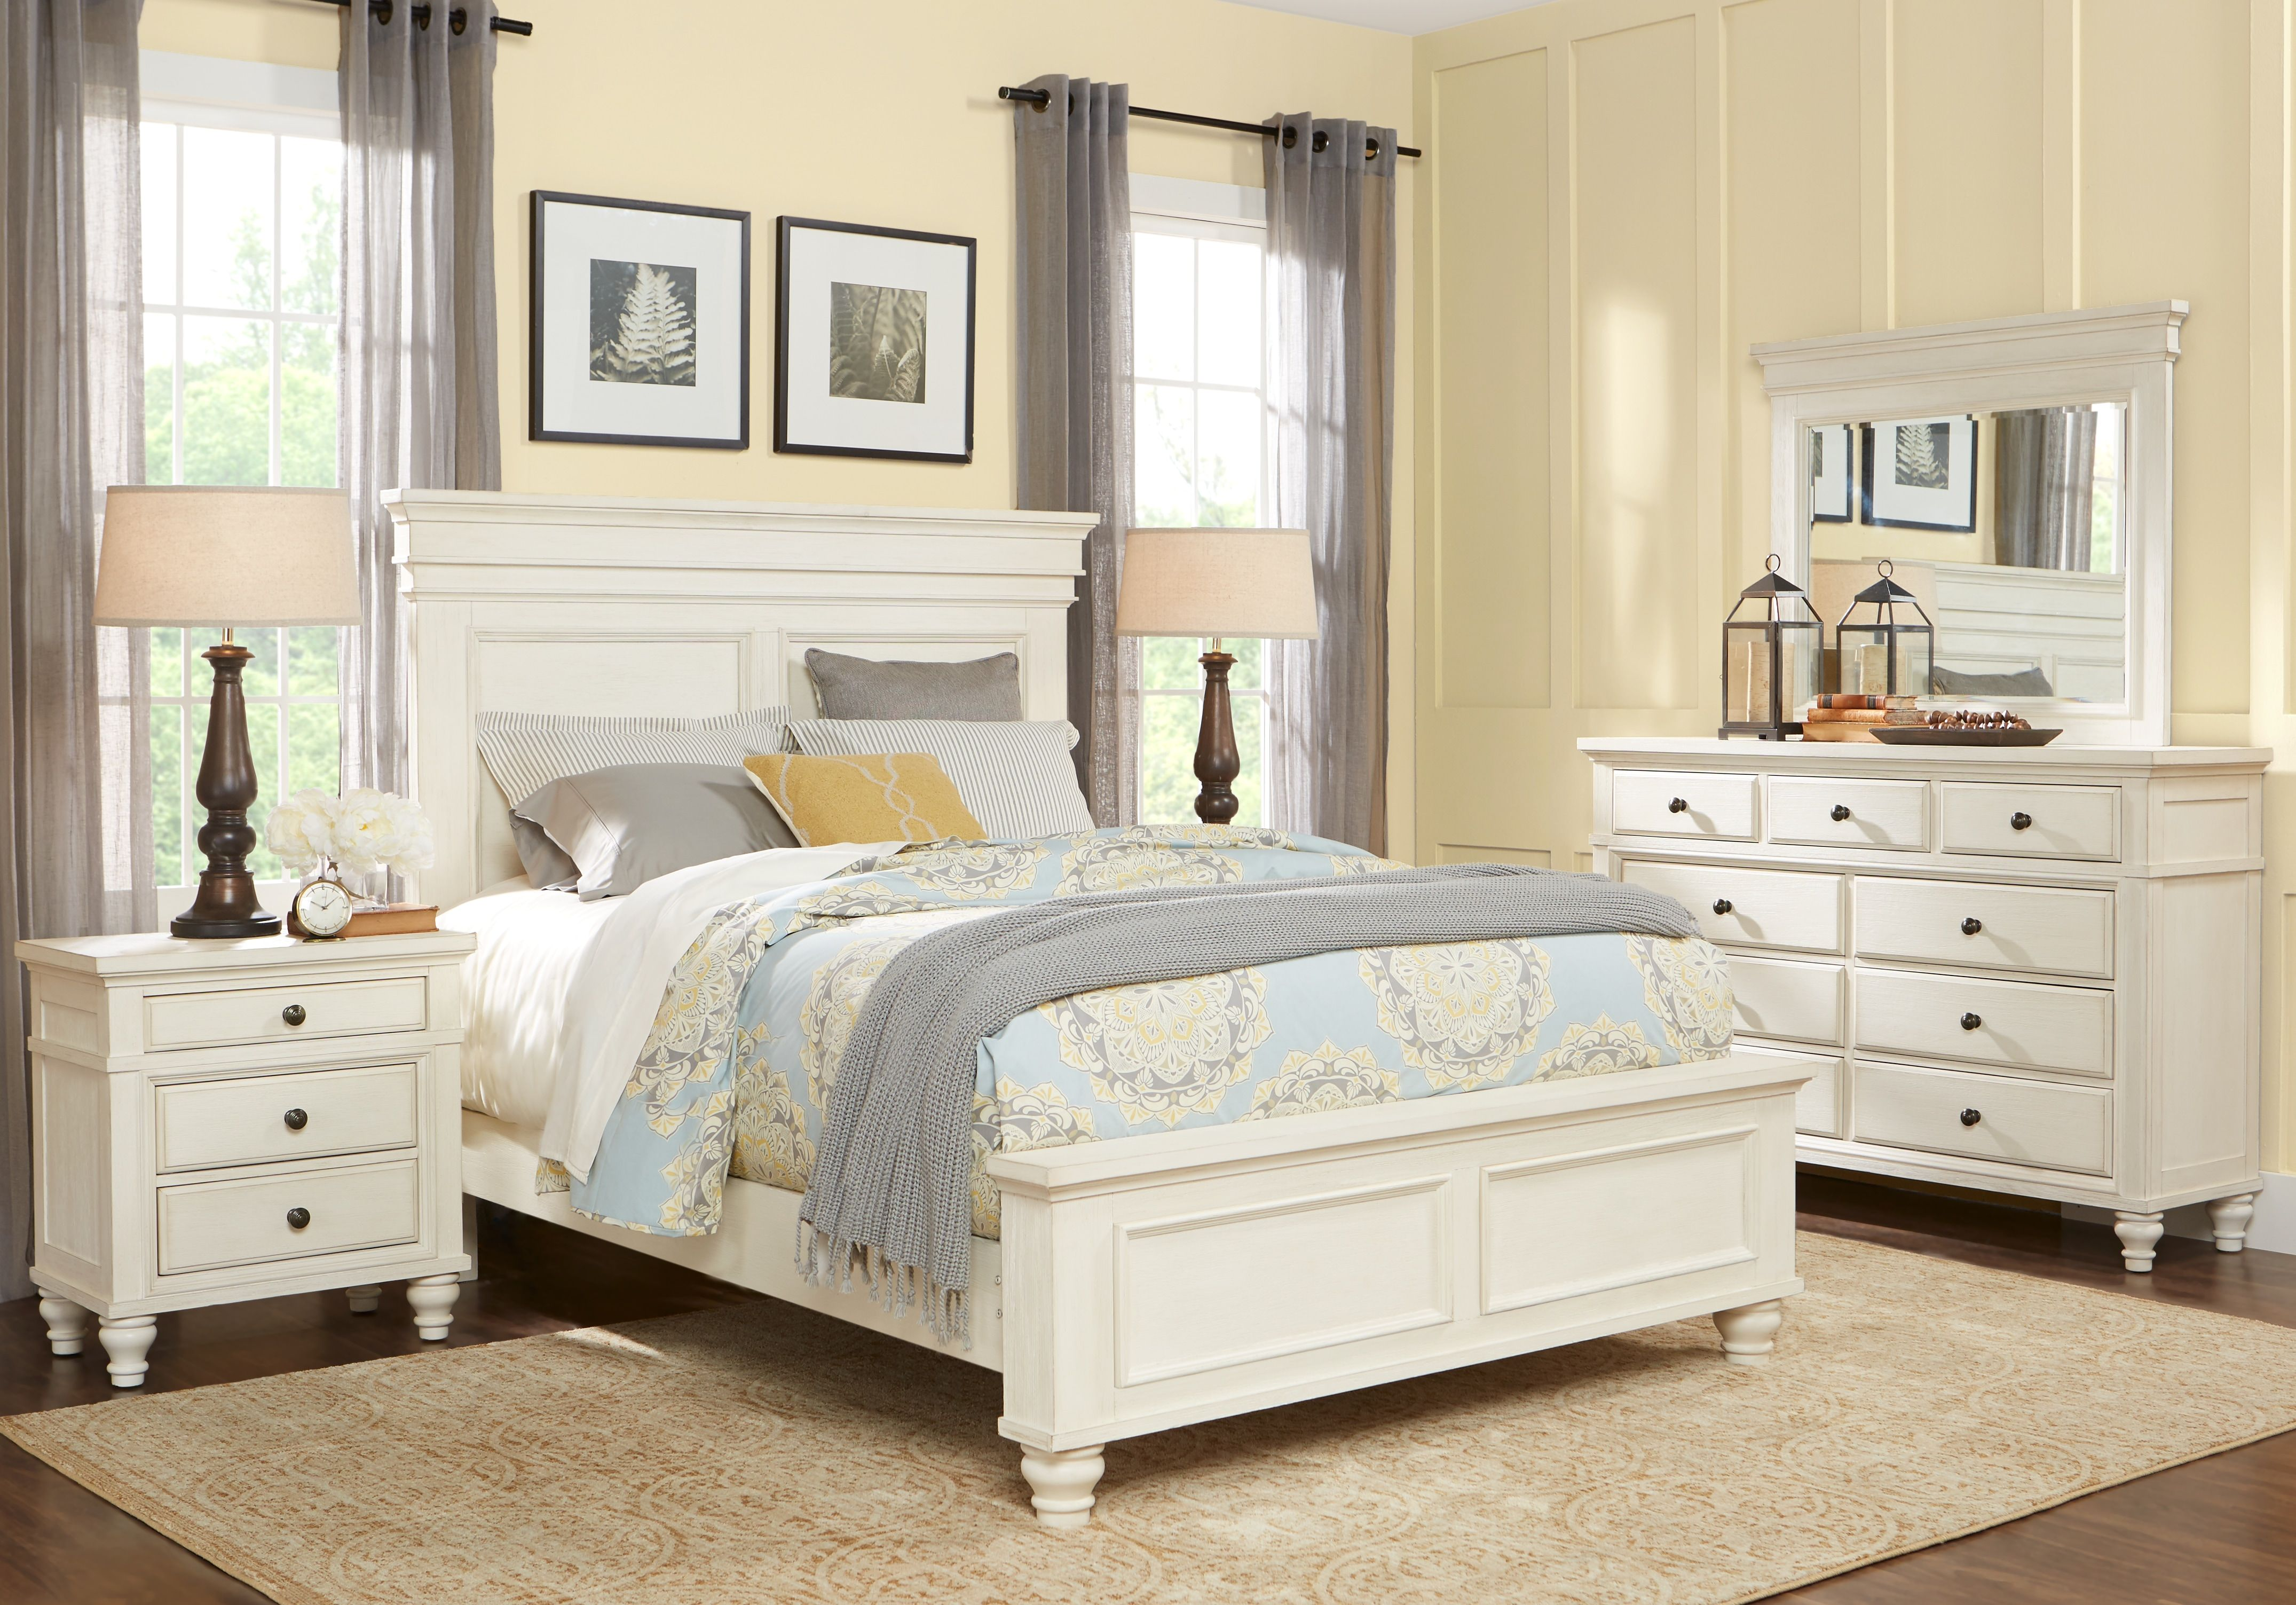 Lake Town Off White 5 Pc King Panel Bedroom Bedroom Sets